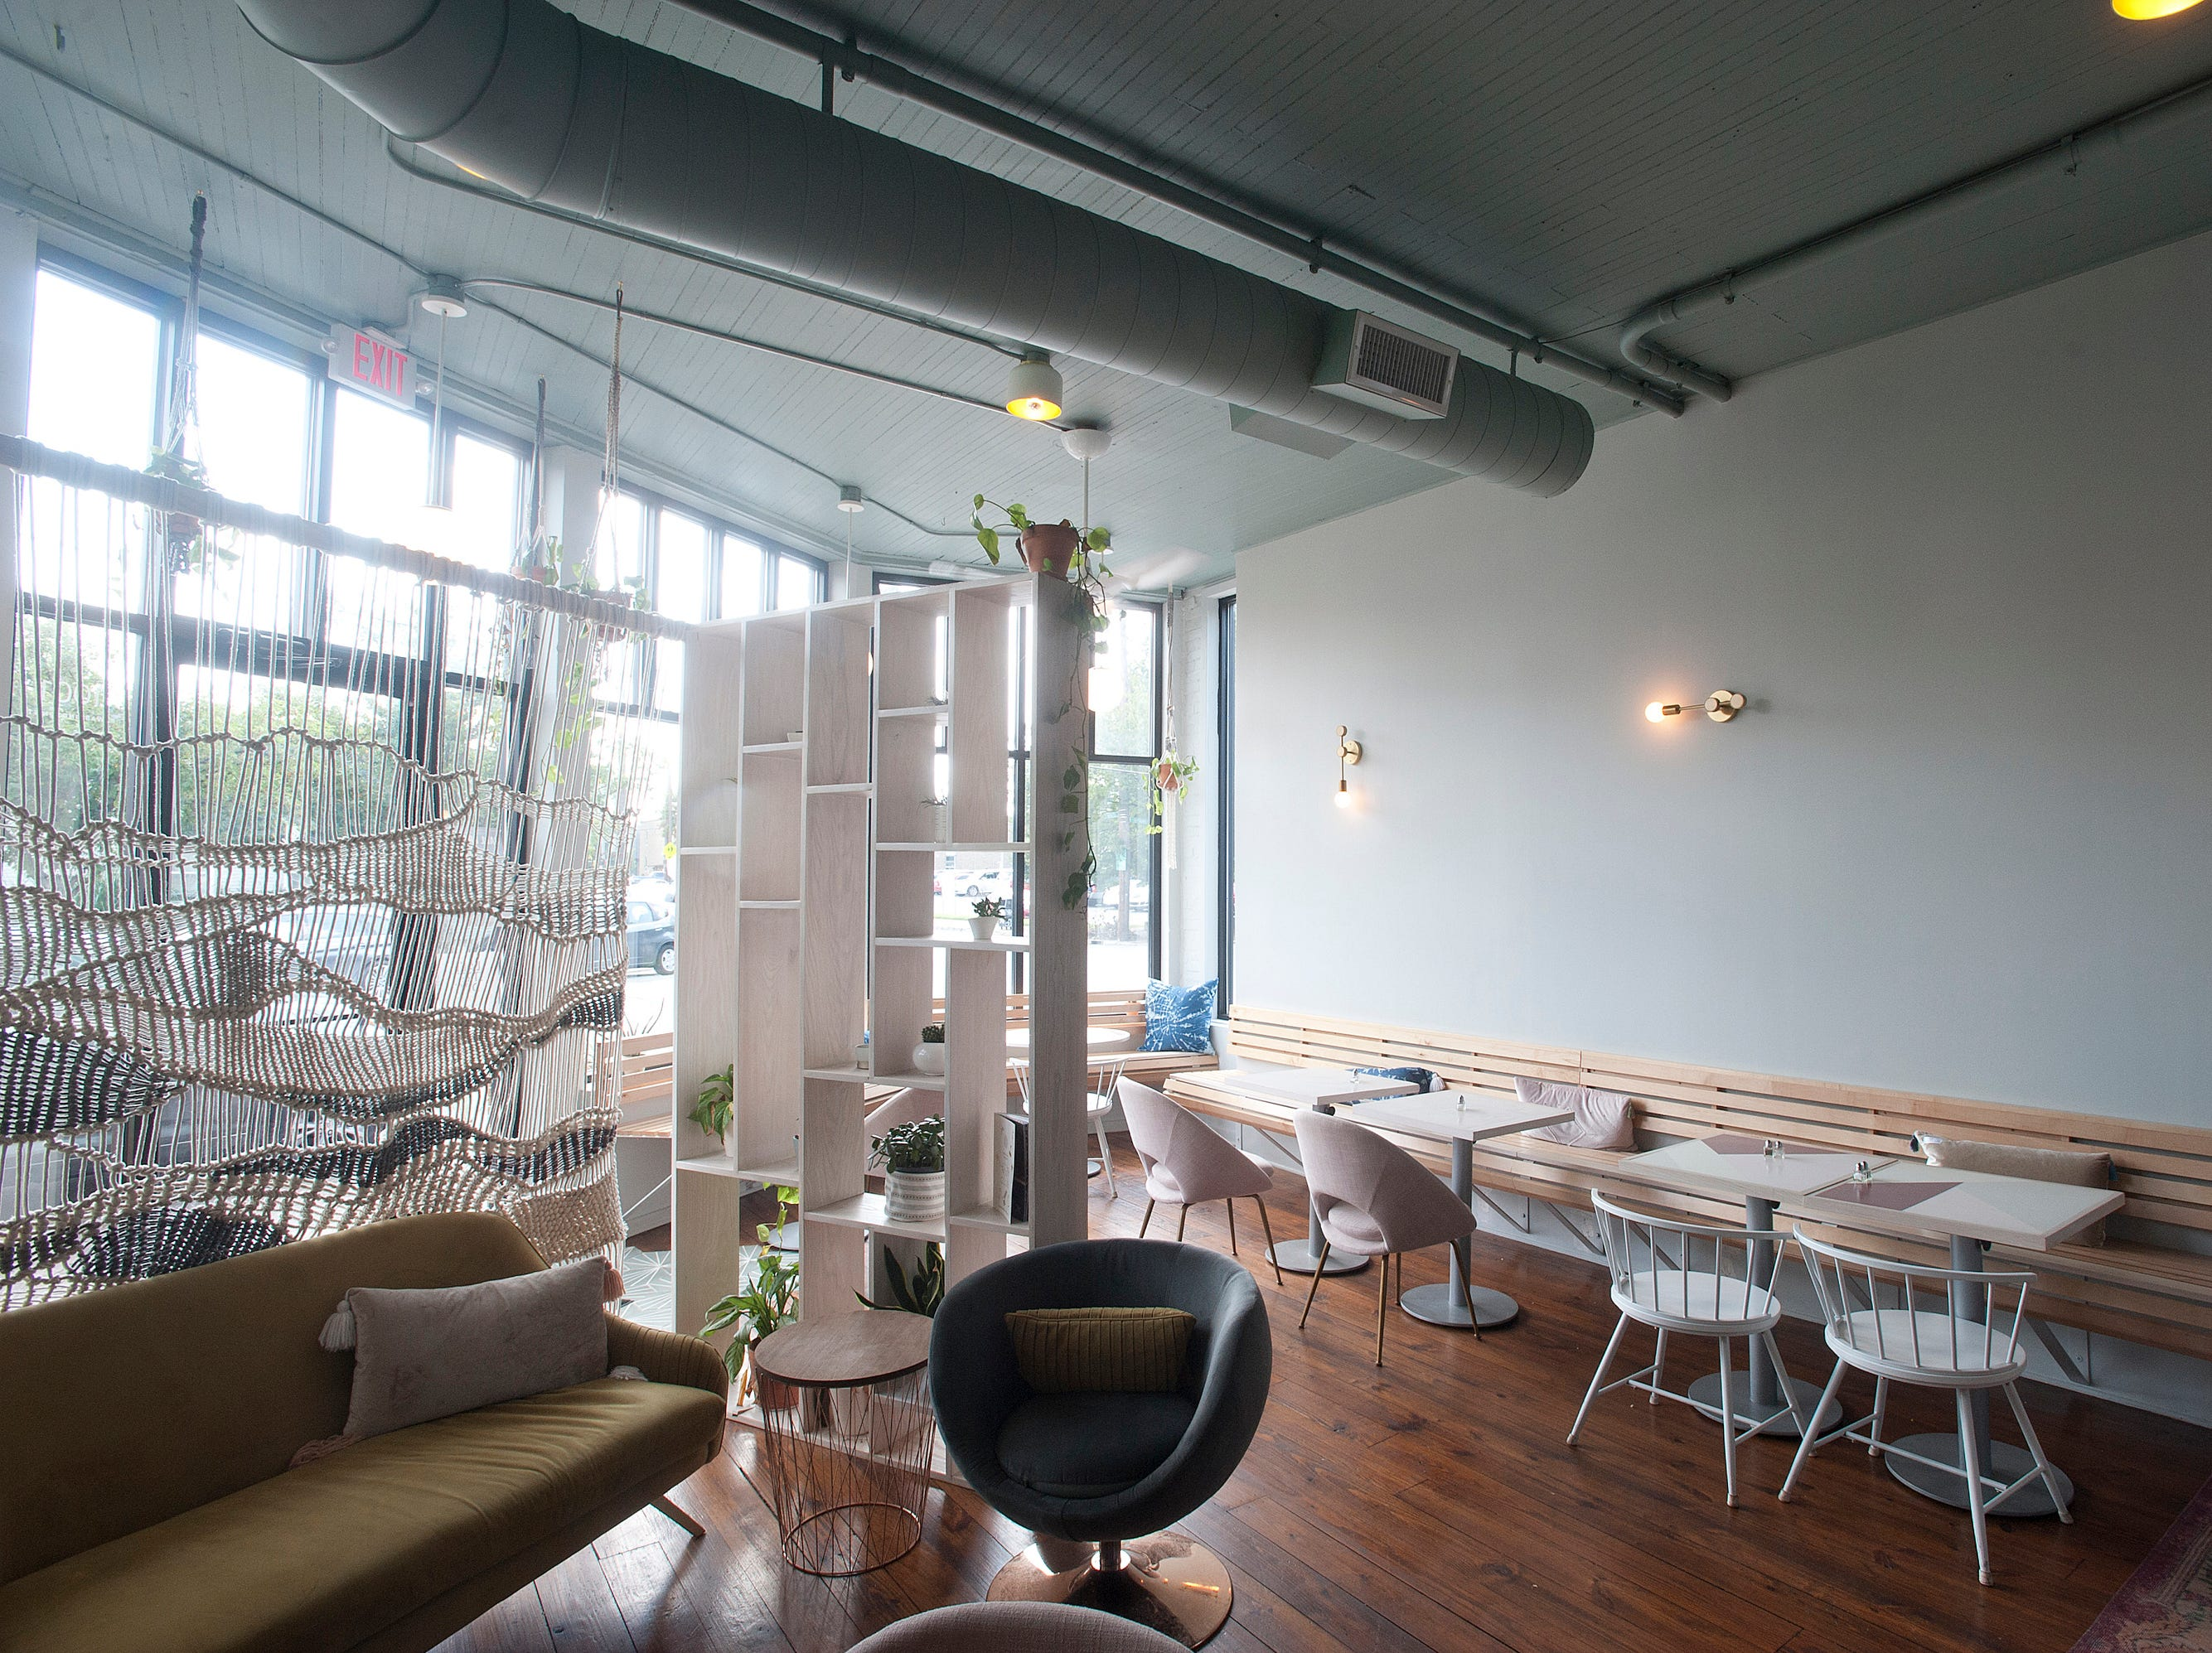 The dining room of Naive, a restaurant on E. Washington St.September 20, 2018